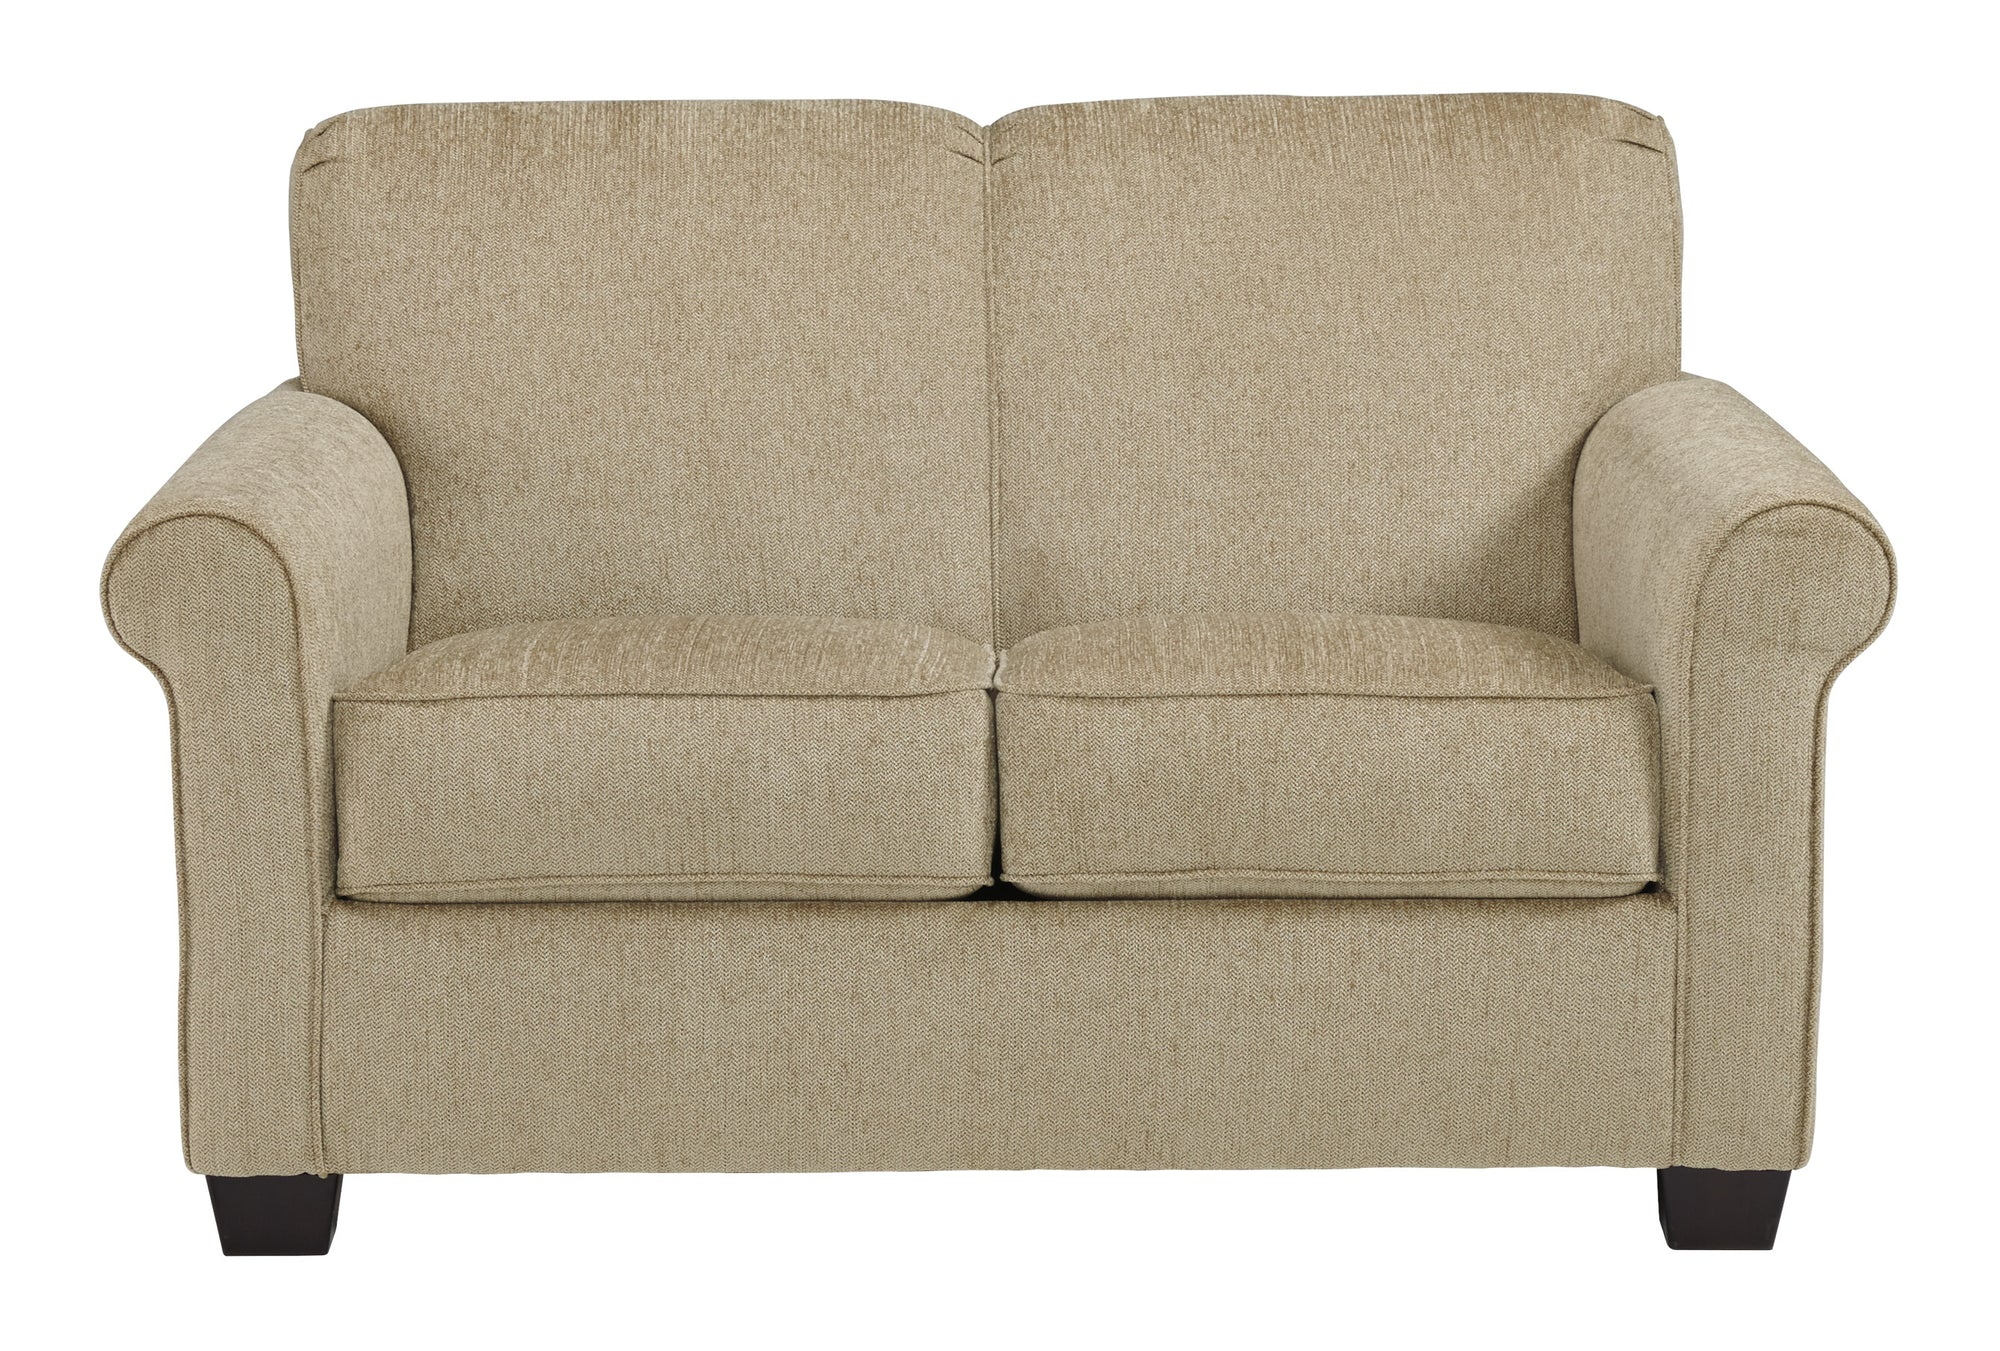 low priced abc03 fa685 Cansler Grain Twin Sofa Sleeper